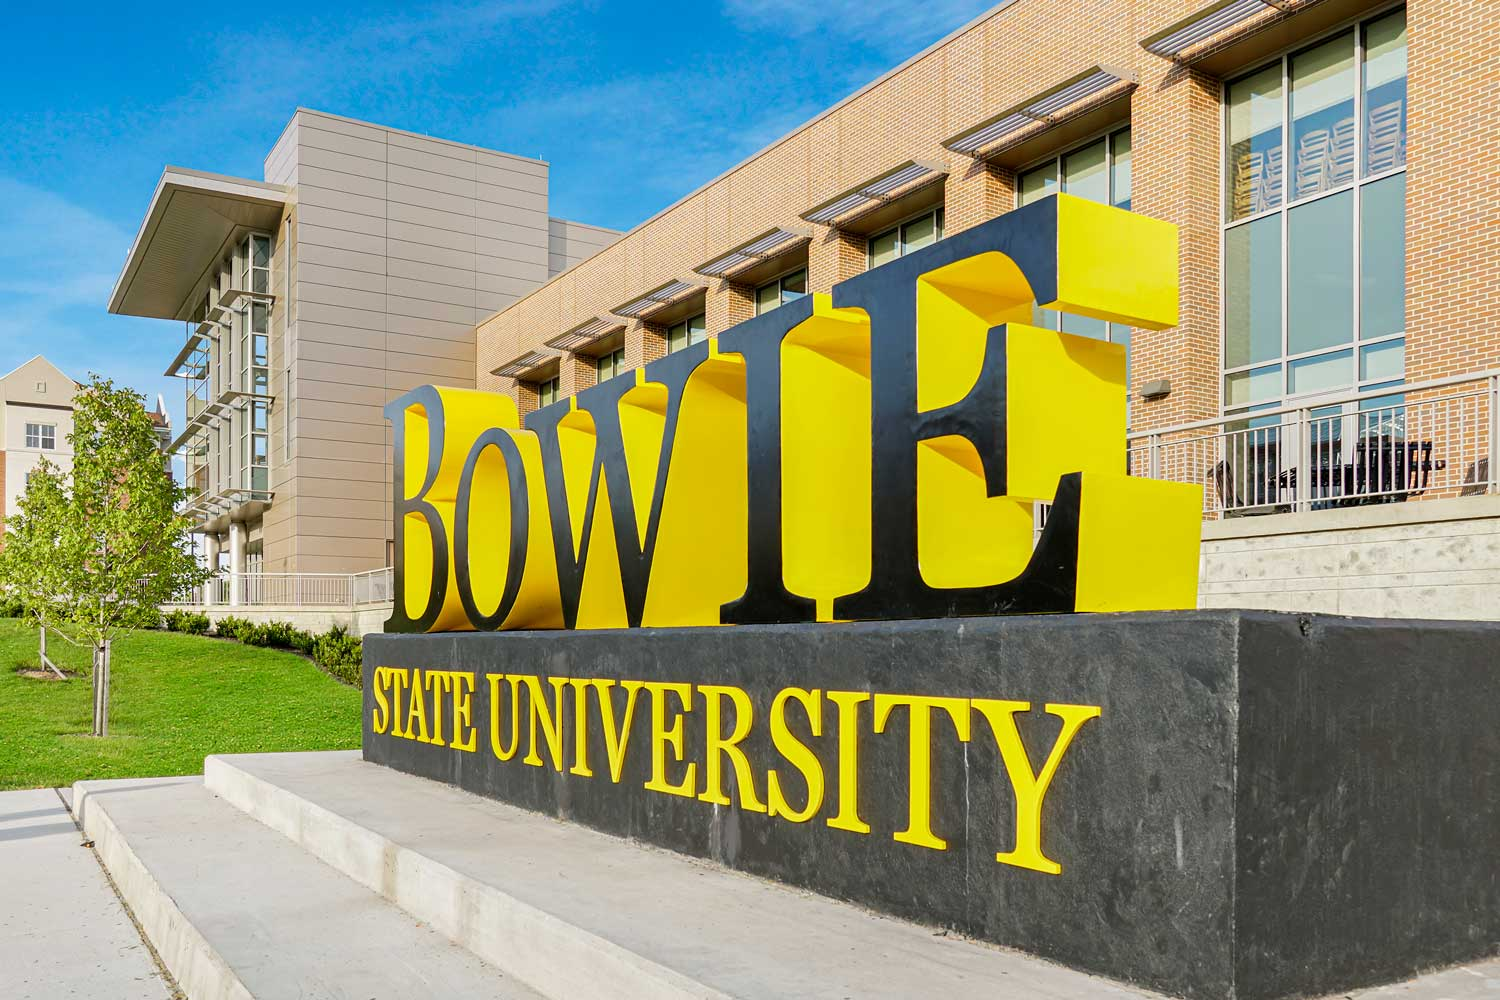 20 minutes to Bowie State University